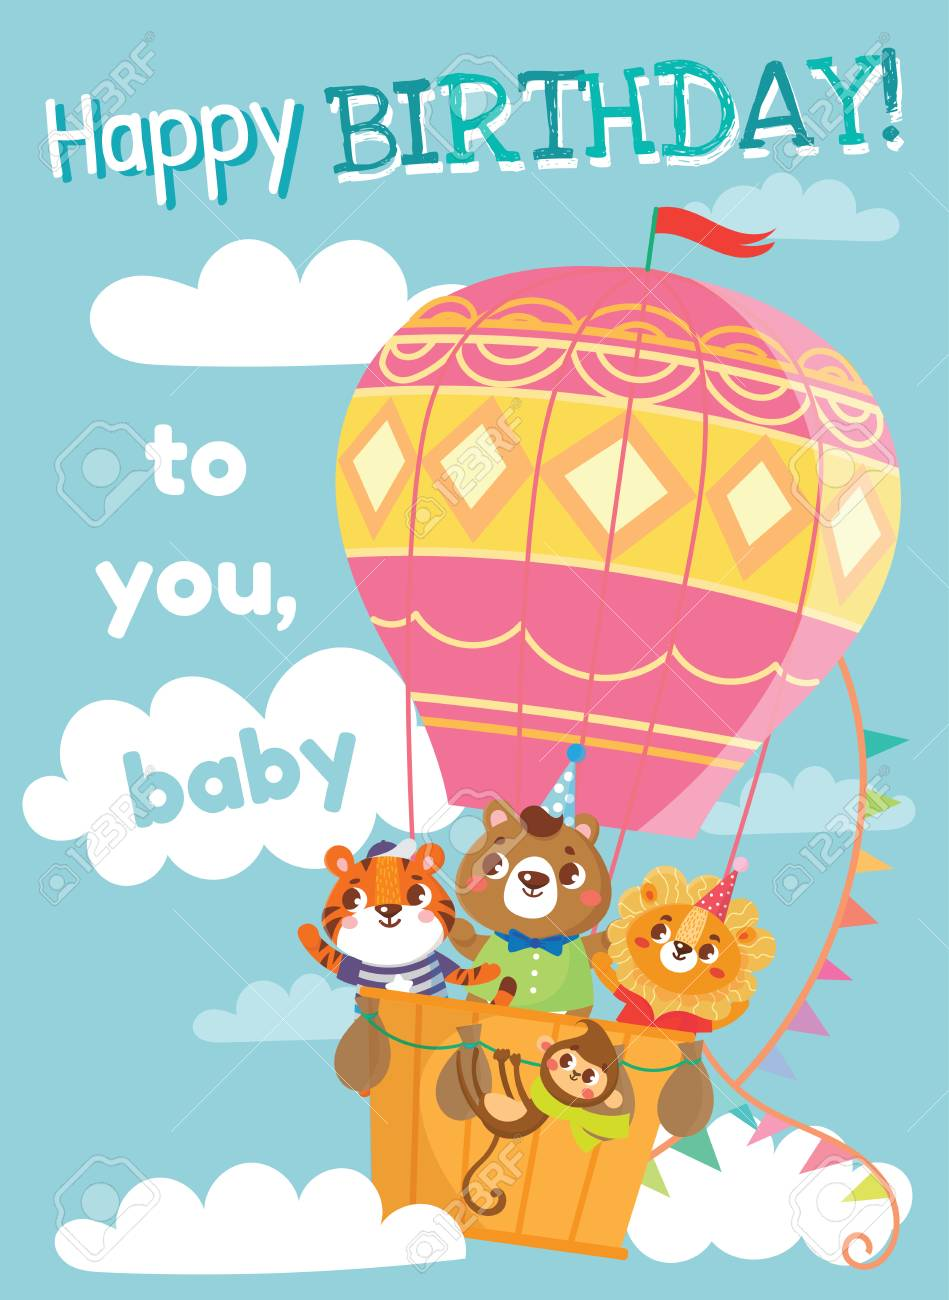 Birthday greeting cards with cute animals funny animals on hot birthday greeting cards with cute animals funny animals on hot air balloon vector illustration bookmarktalkfo Choice Image